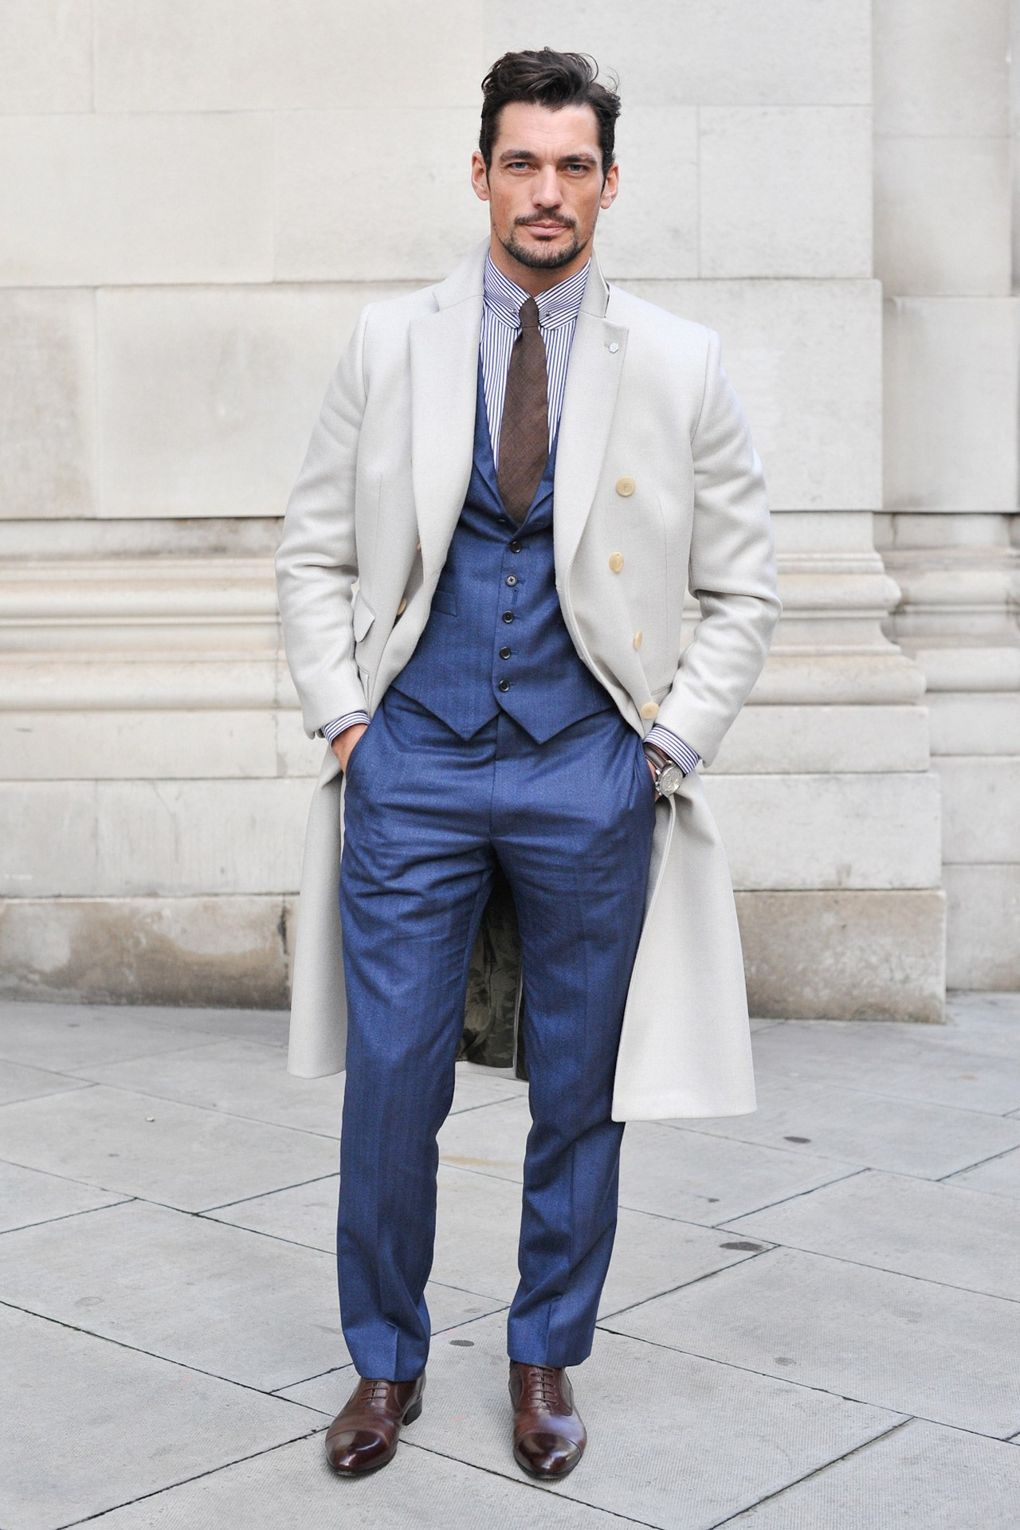 Styling David Gandy The Joy Of Gucci Make-Up: This Week The Beauty Desk Have Been